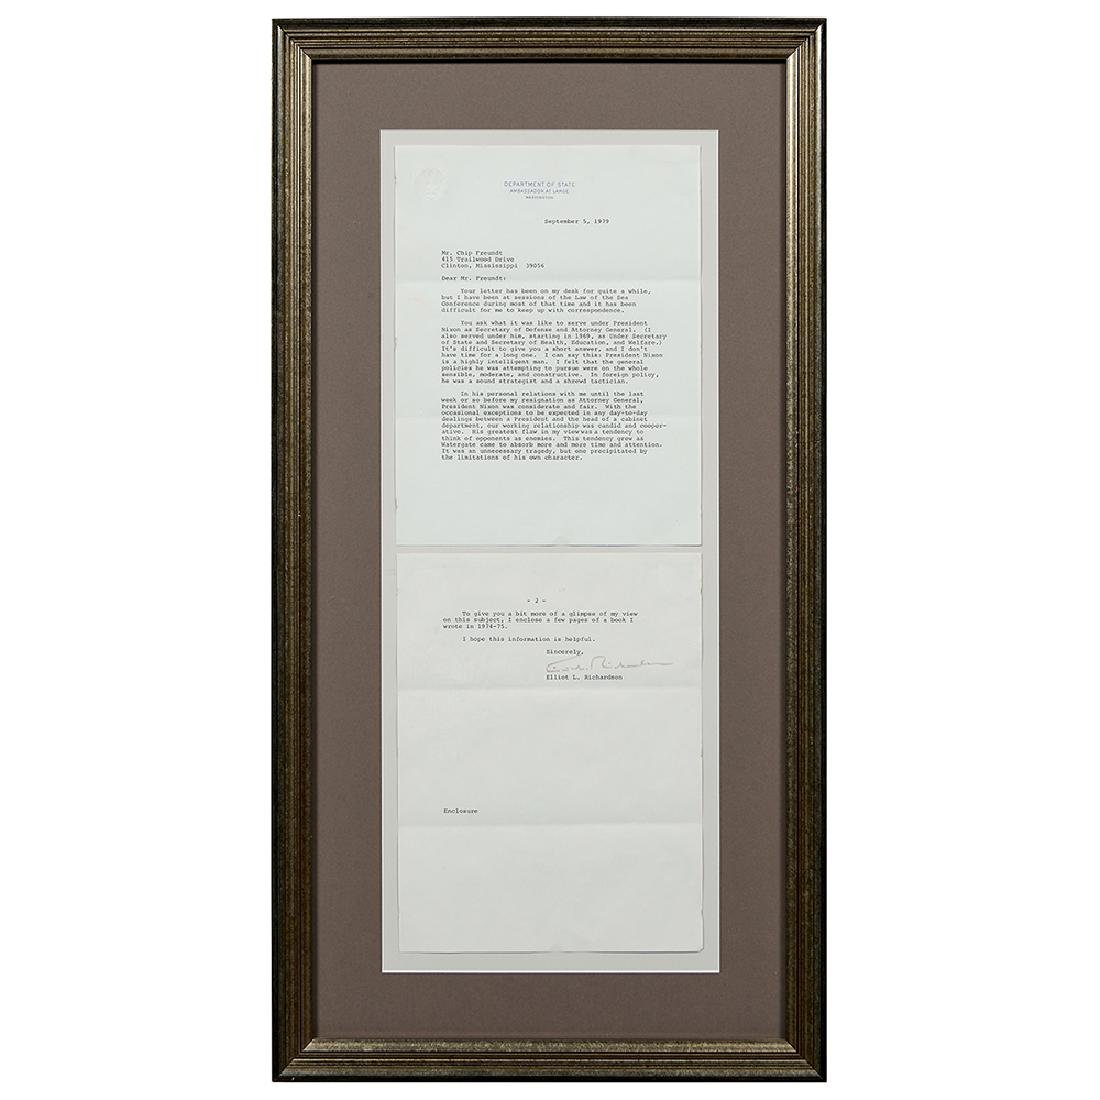 Watergate, (3) Signed Letters and (4) Photographs - 7